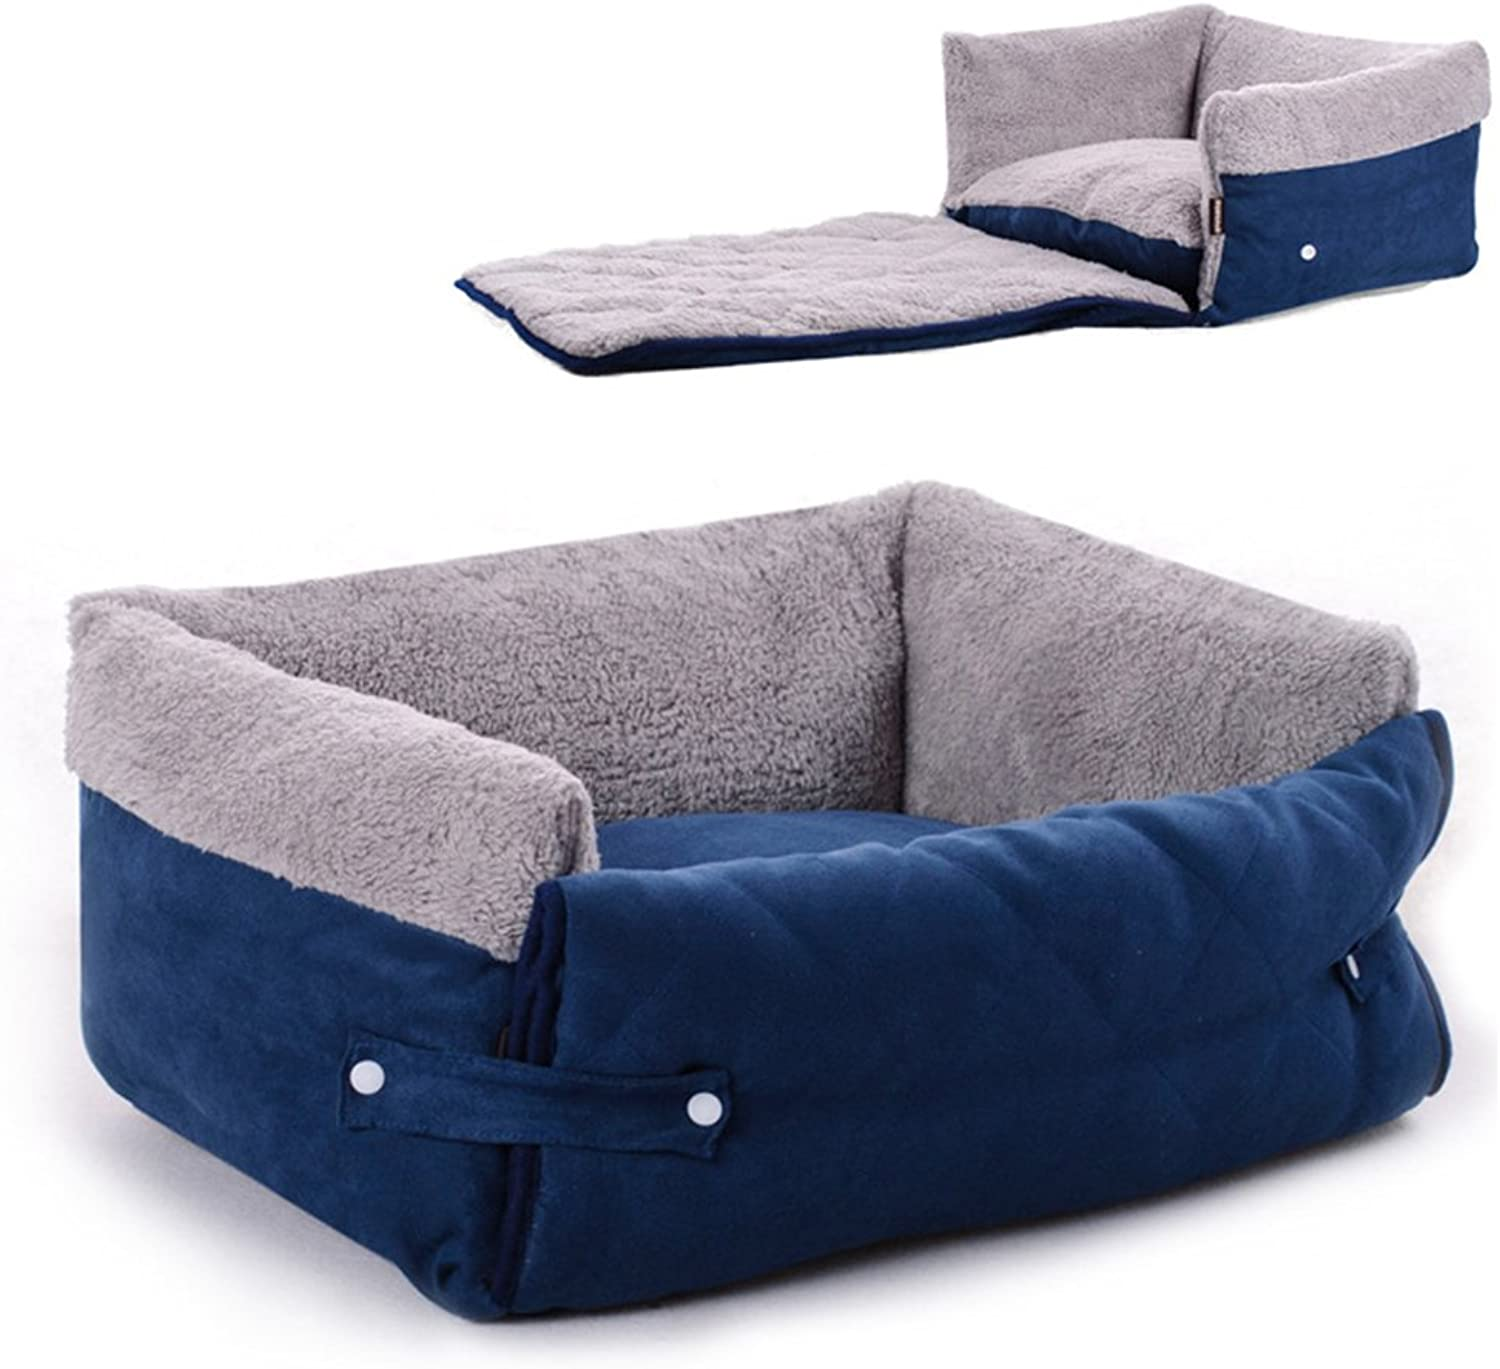 Kxtffeect Pet Bed for Cats and Small Medium Dogs, Wasable Soft Pet Bed Pet Mat with Cover (L, Blue)